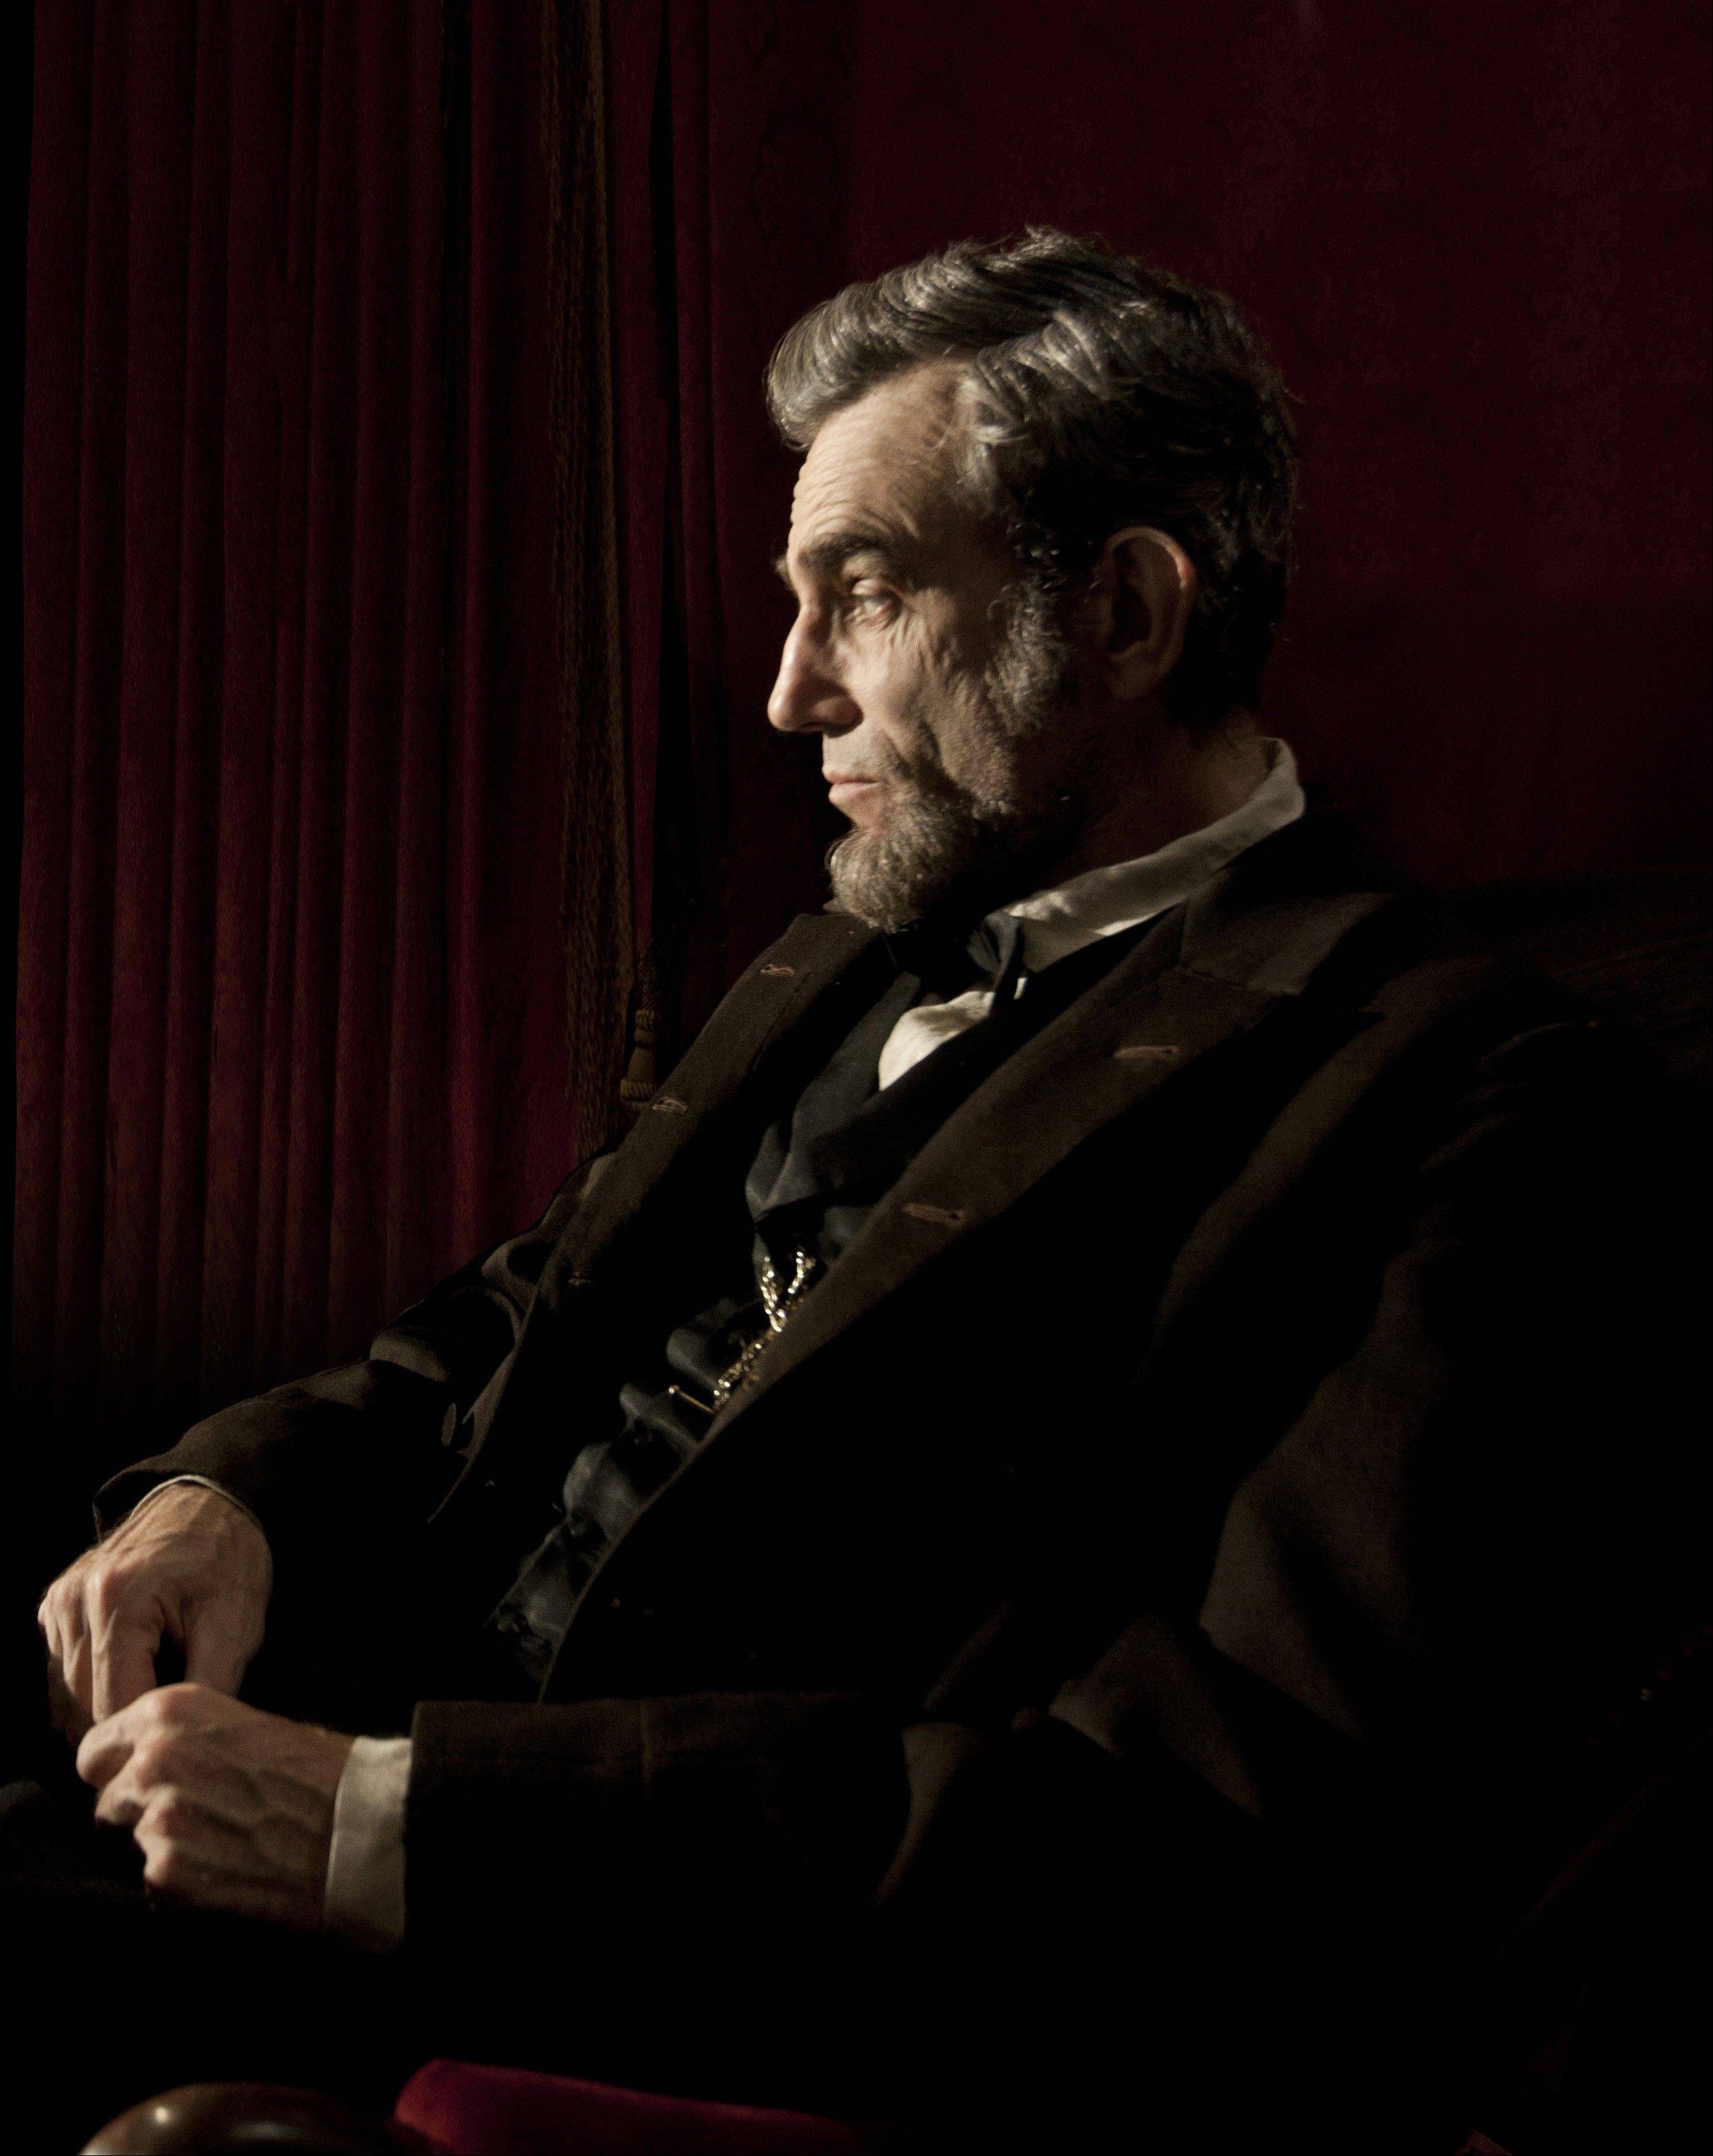 �Lincoln,� with Daniel Day-Lewis portraying Abraham Lincoln, was nominated by the Producers Guild of America for the 24th Annual Producers Awards Wednesday.